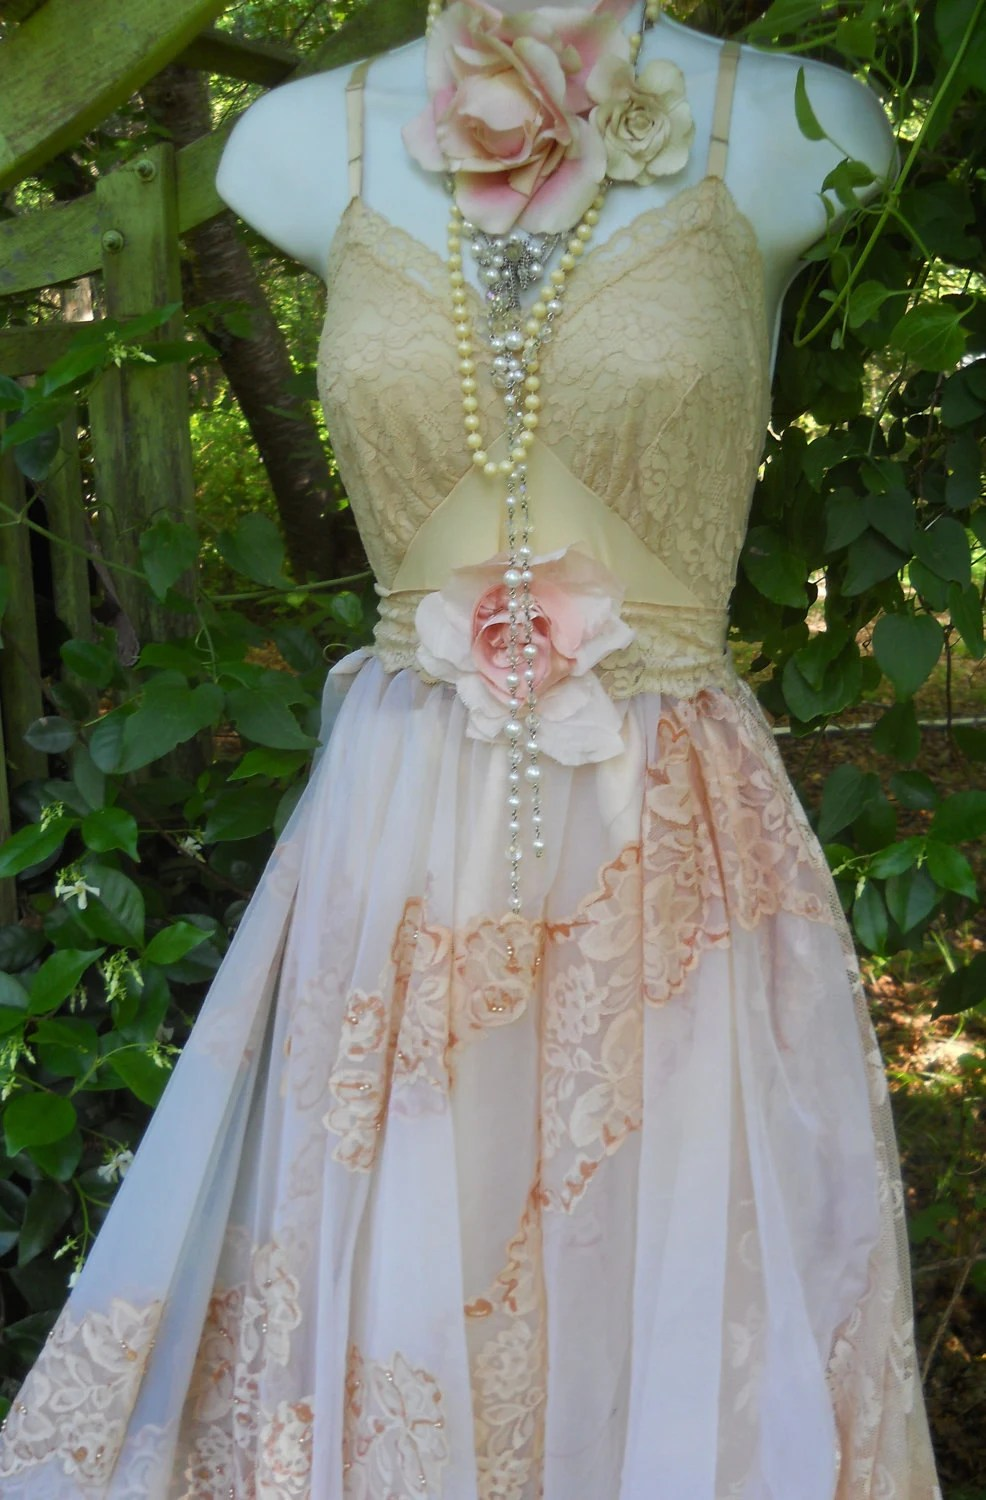 Beaded wedding dress vintage lace tea stained romantic rose